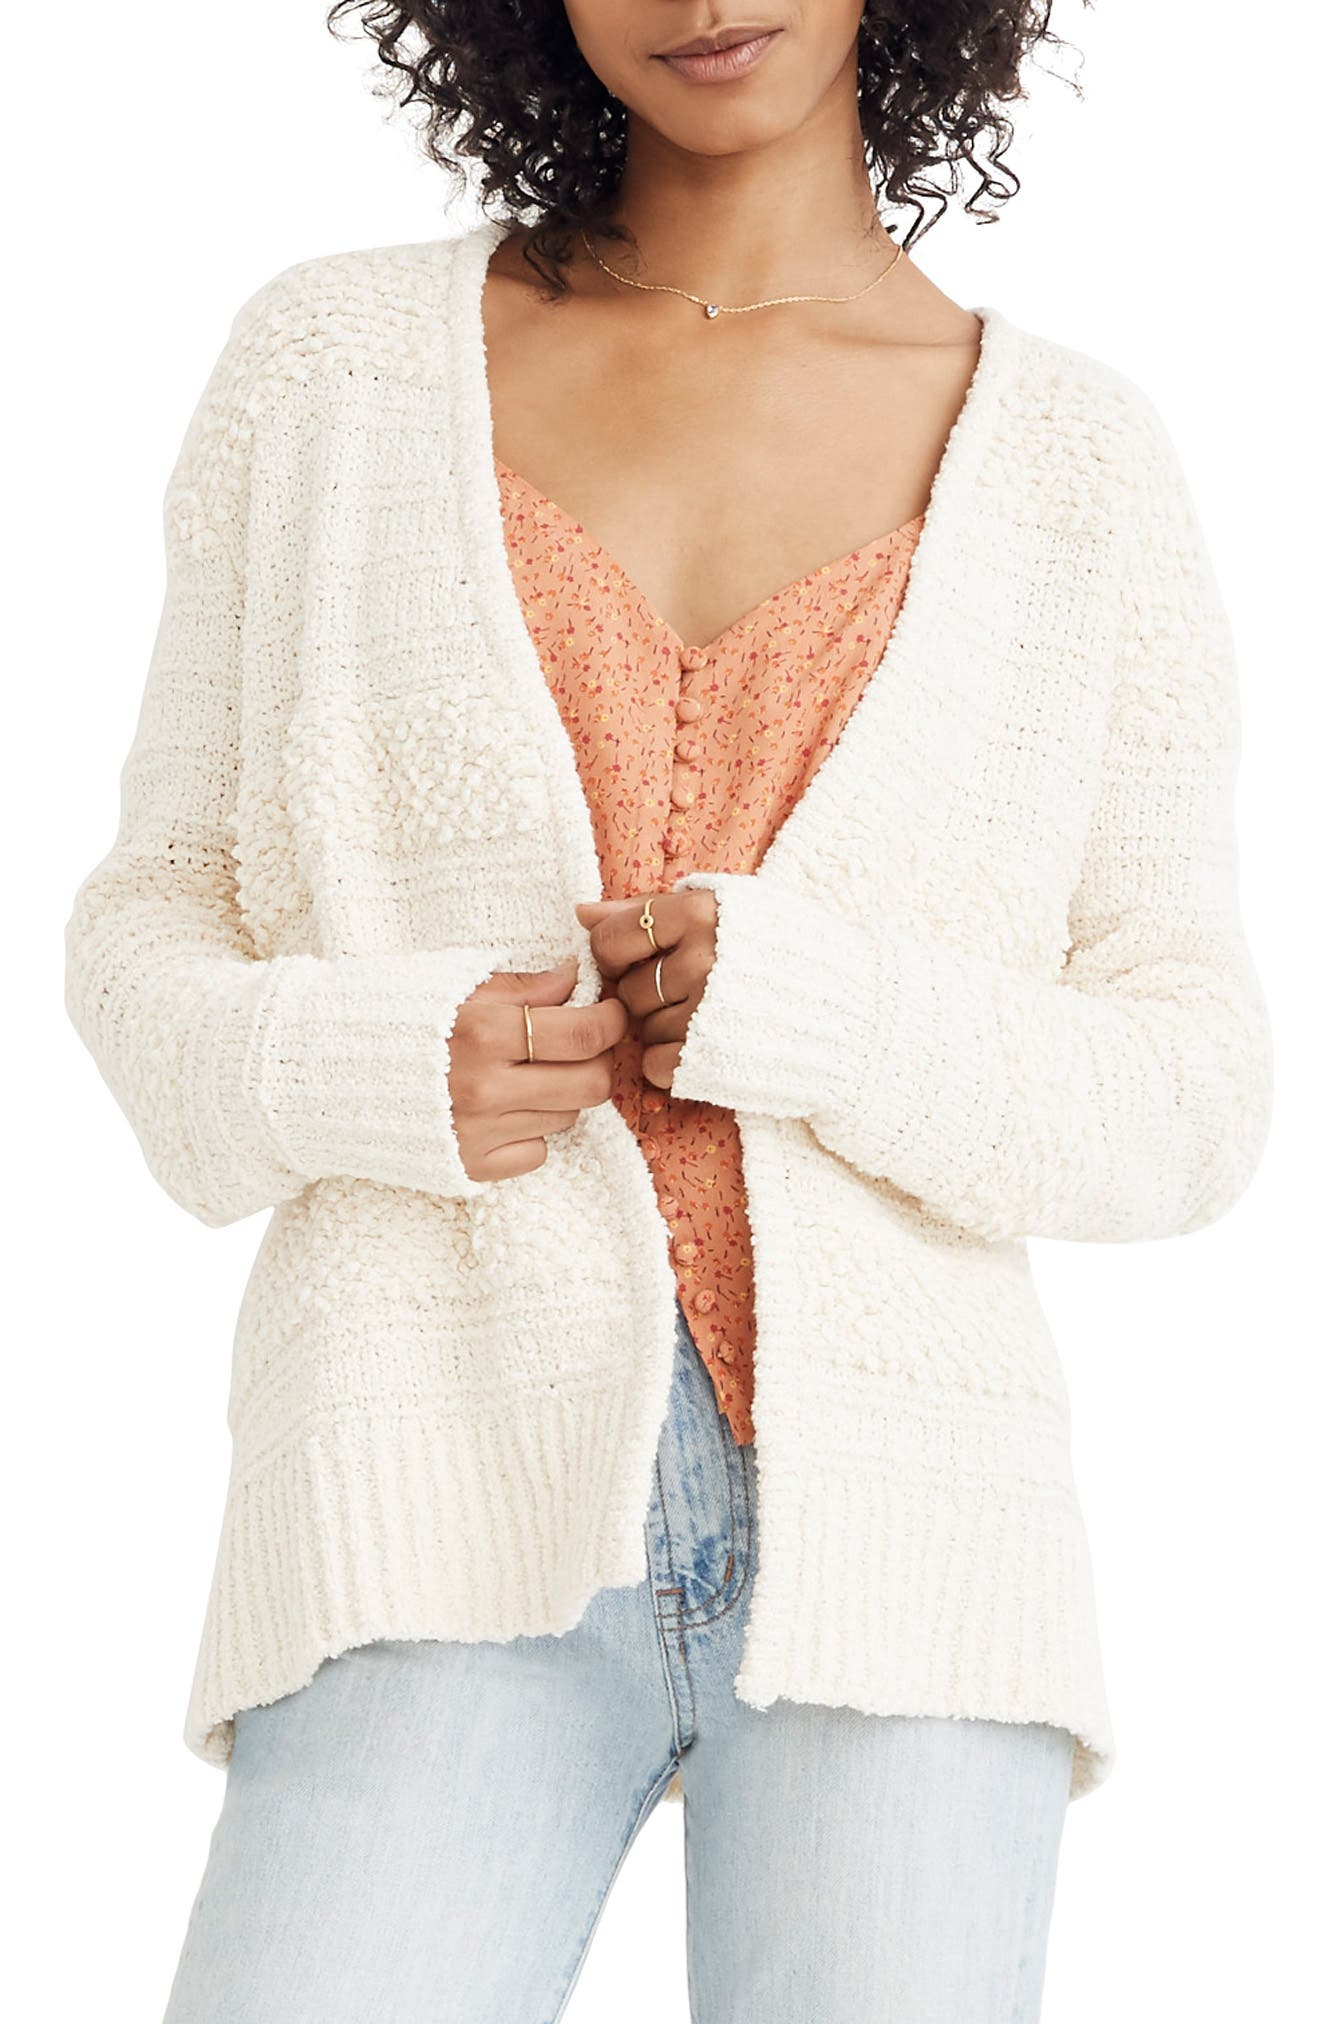 MADEWELL, Bronson Cardigan, Main thumbnail 1, color, 900